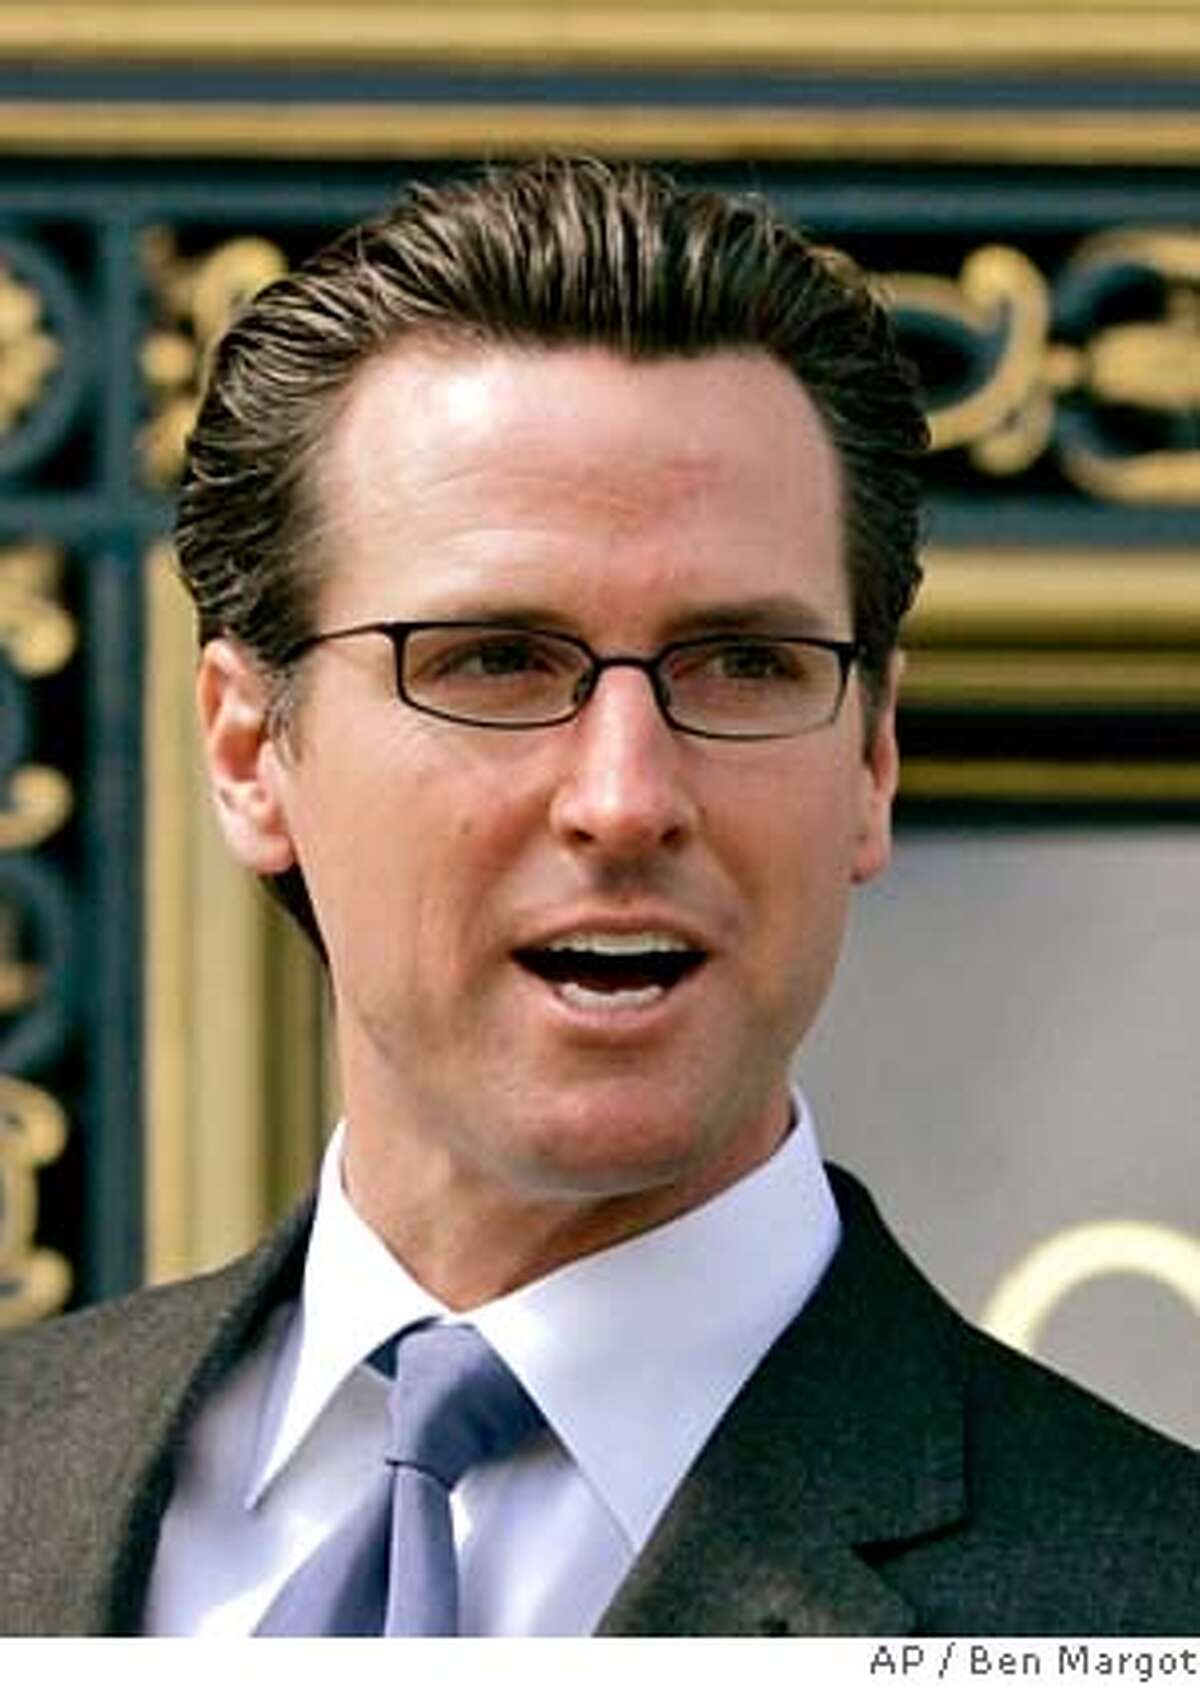 ** FILE **San Francisco Mayor Gavin Newsom speaks about lending his support for a ban on the usage of non-biodegradable plastic bags, seen in this Tuesday, March 27, 2007, file photo in San Francisco. Eight months after admitting he had a drinking problem and an affair with a close aide's wife, Mayor Gavin Newsom stands poised to win his second term without breaking a sweat. (AP Photo/Ben Margot) Ran on: 11-07-2007 Sharpened focus: Audacious has become one of Mayor Gavin Newsoms favored terms in describing his second-term approach to governing. MARCH 27, 2007, FILE PHOTO